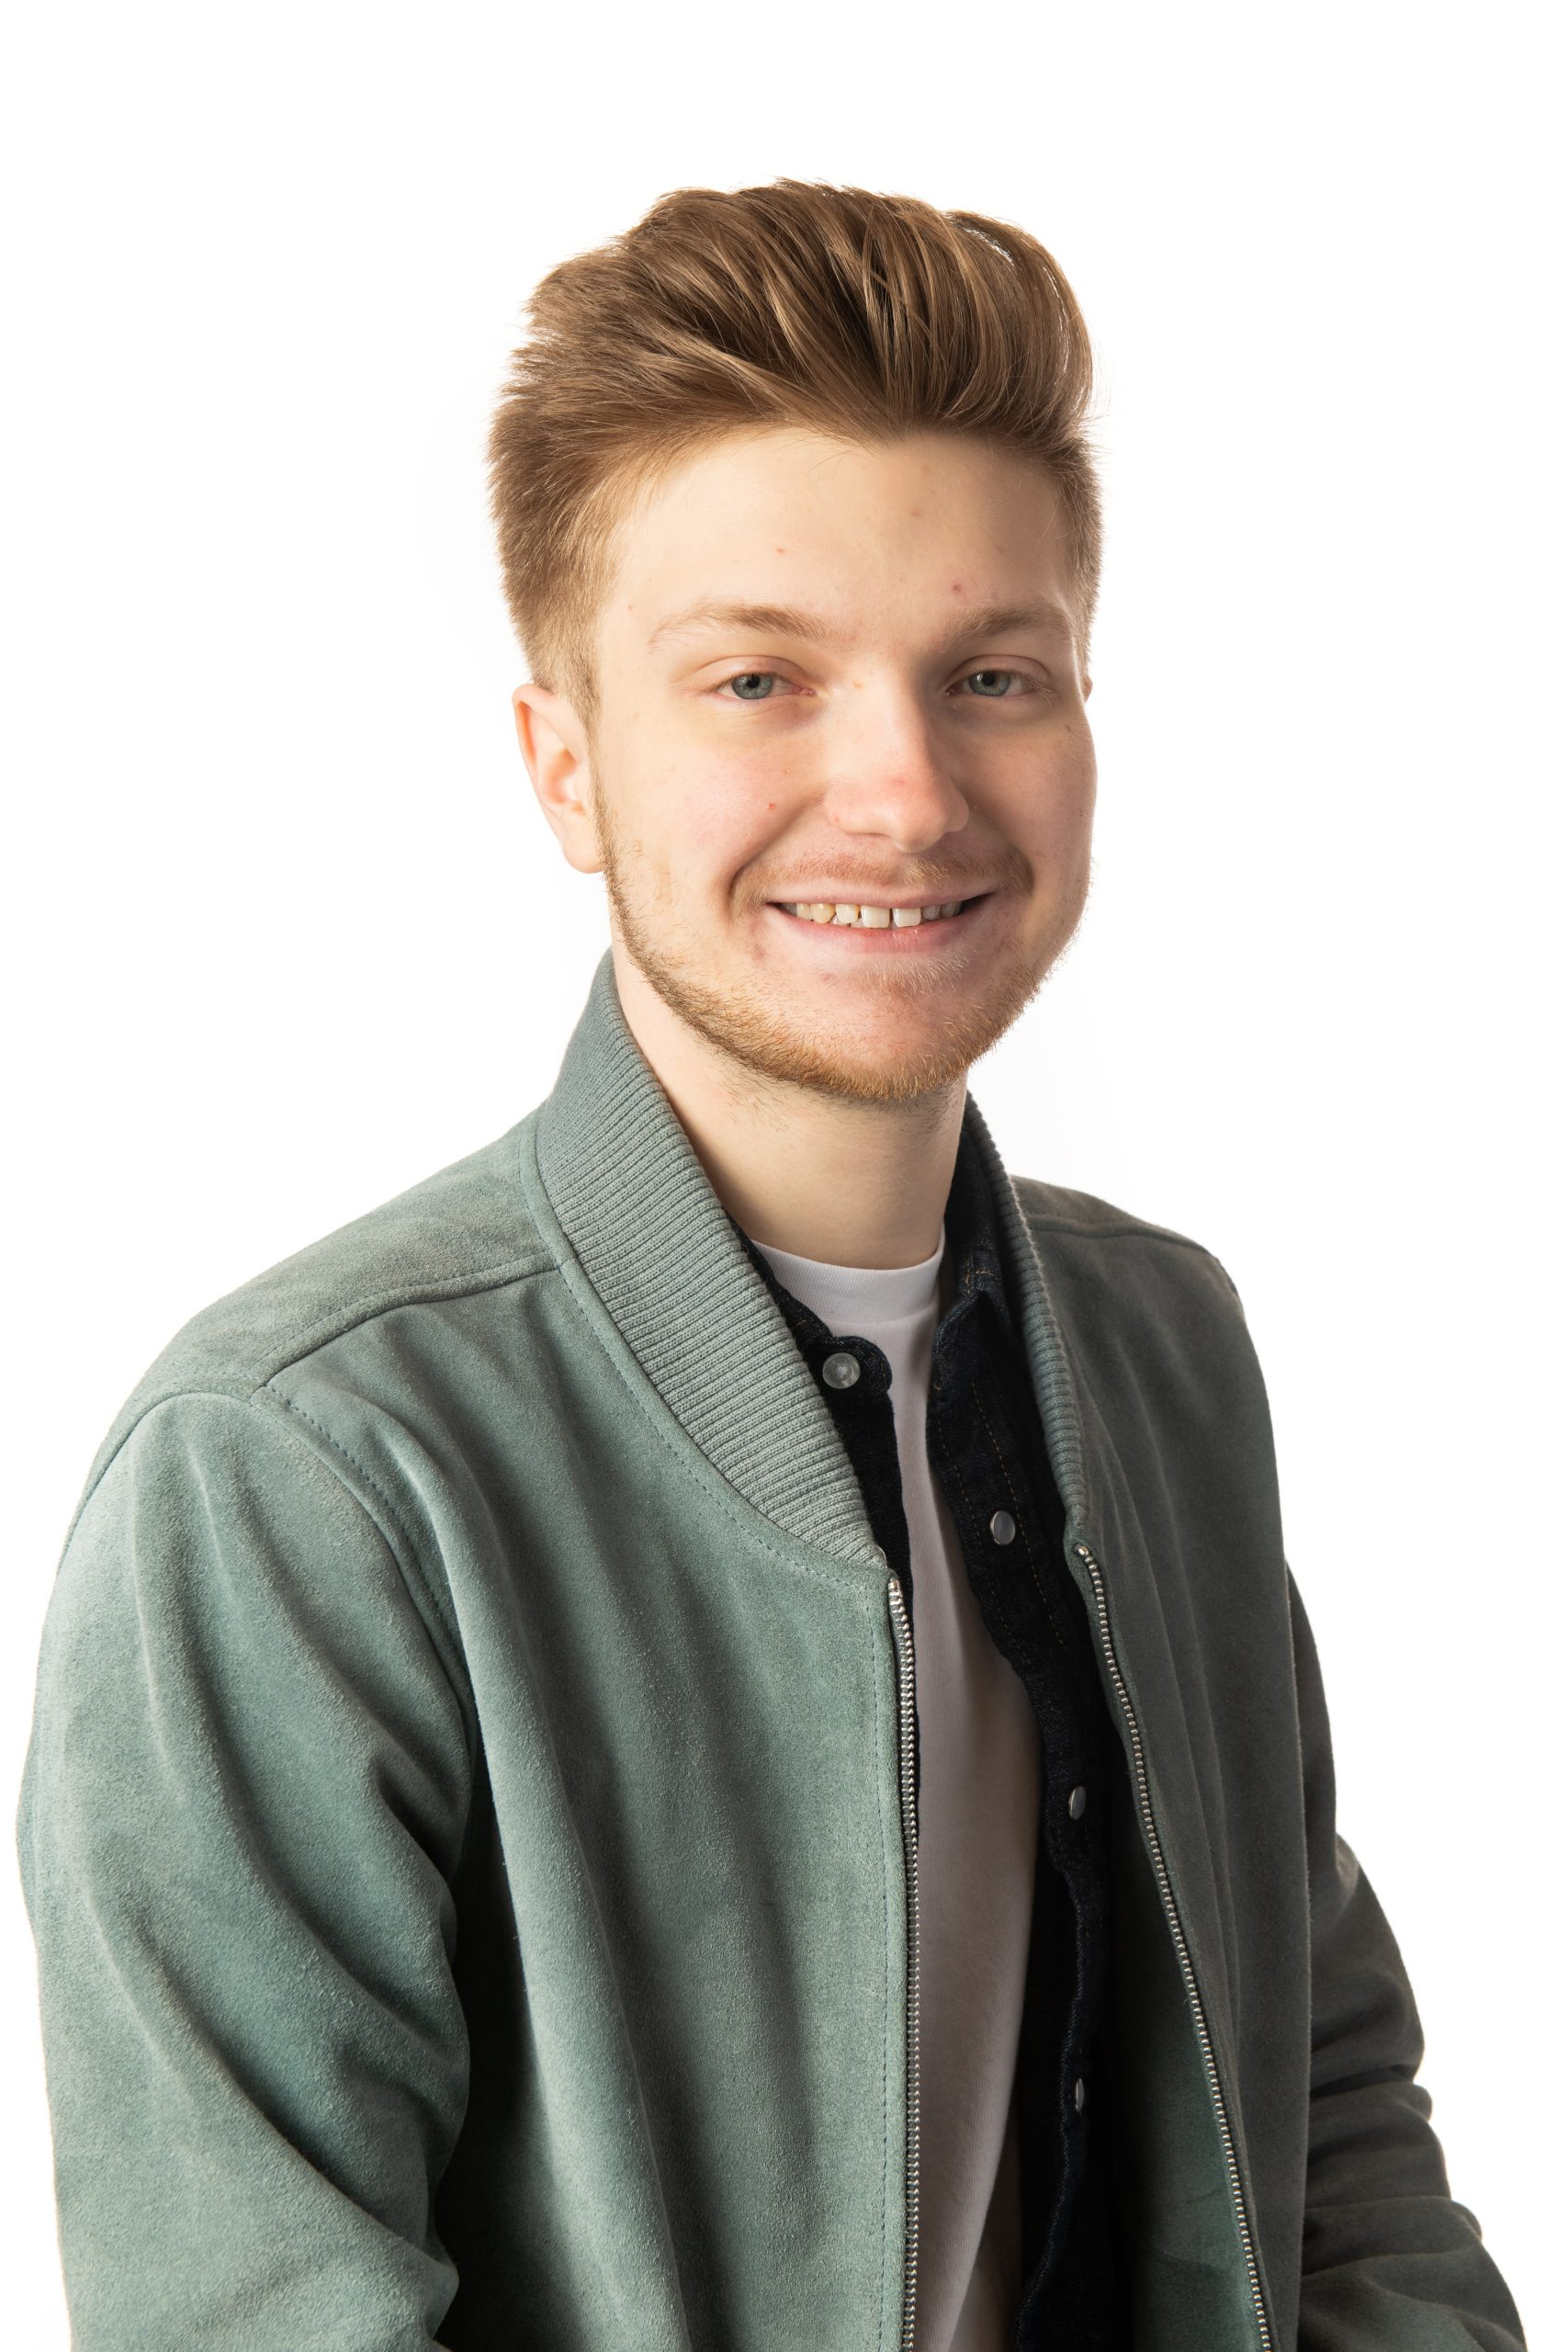 Headshot picture of a Game Design student student